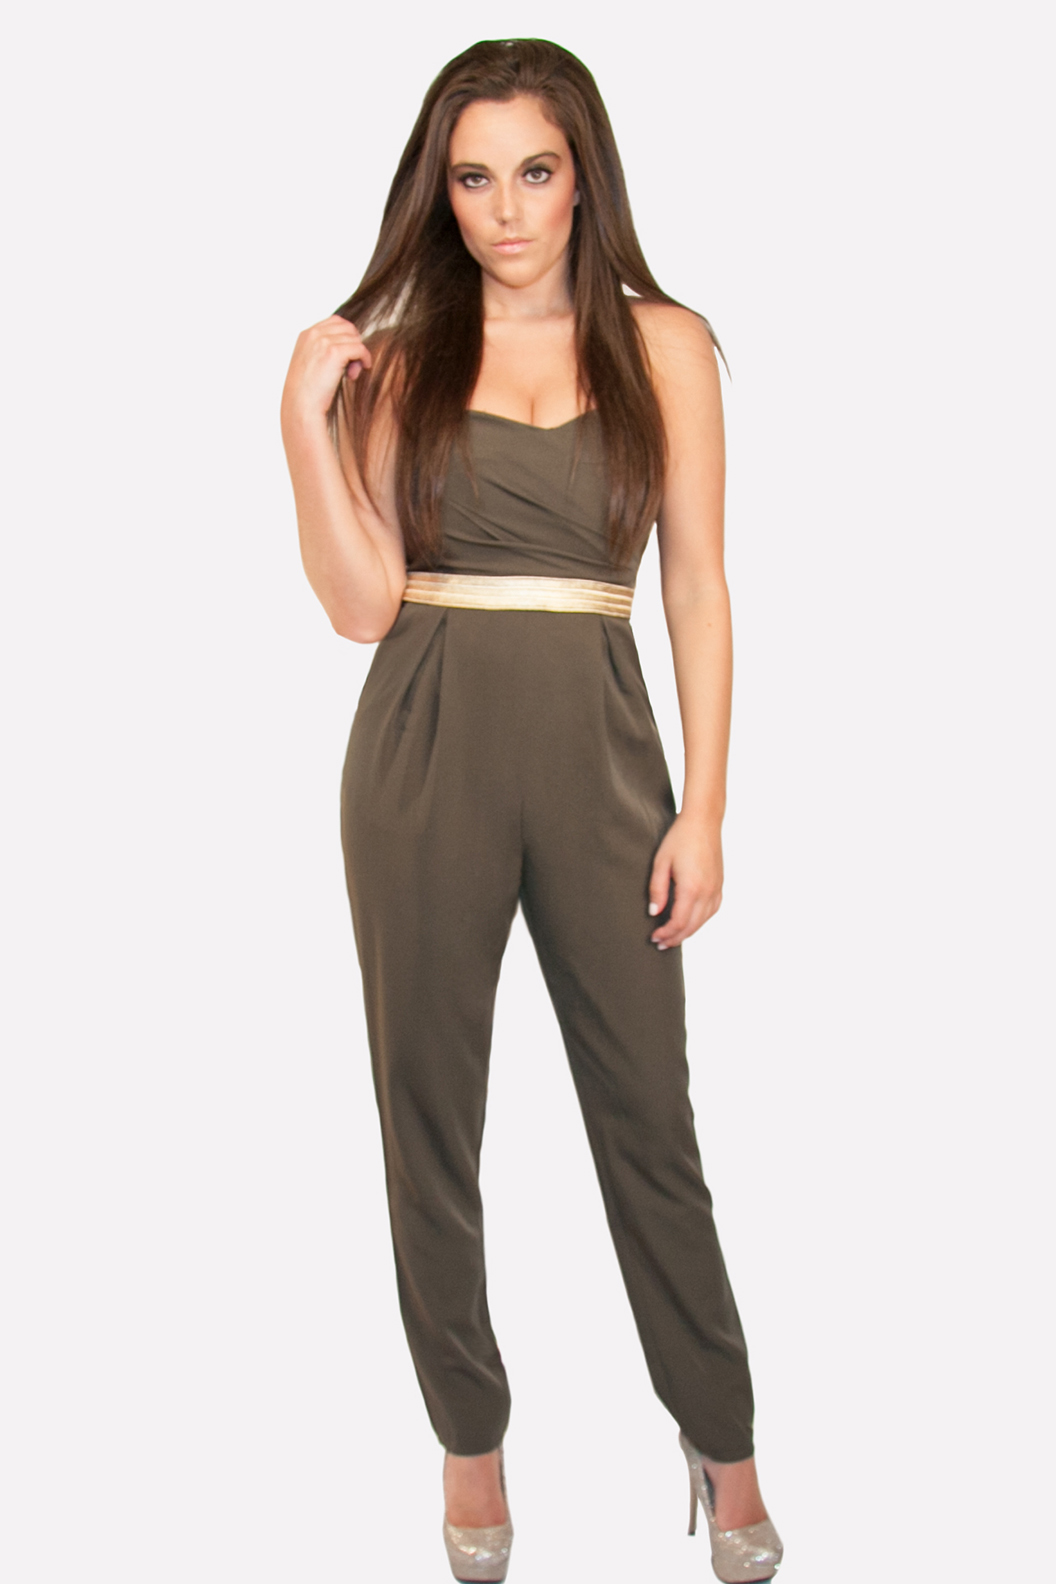 Dark Olive Green Jumpsuit